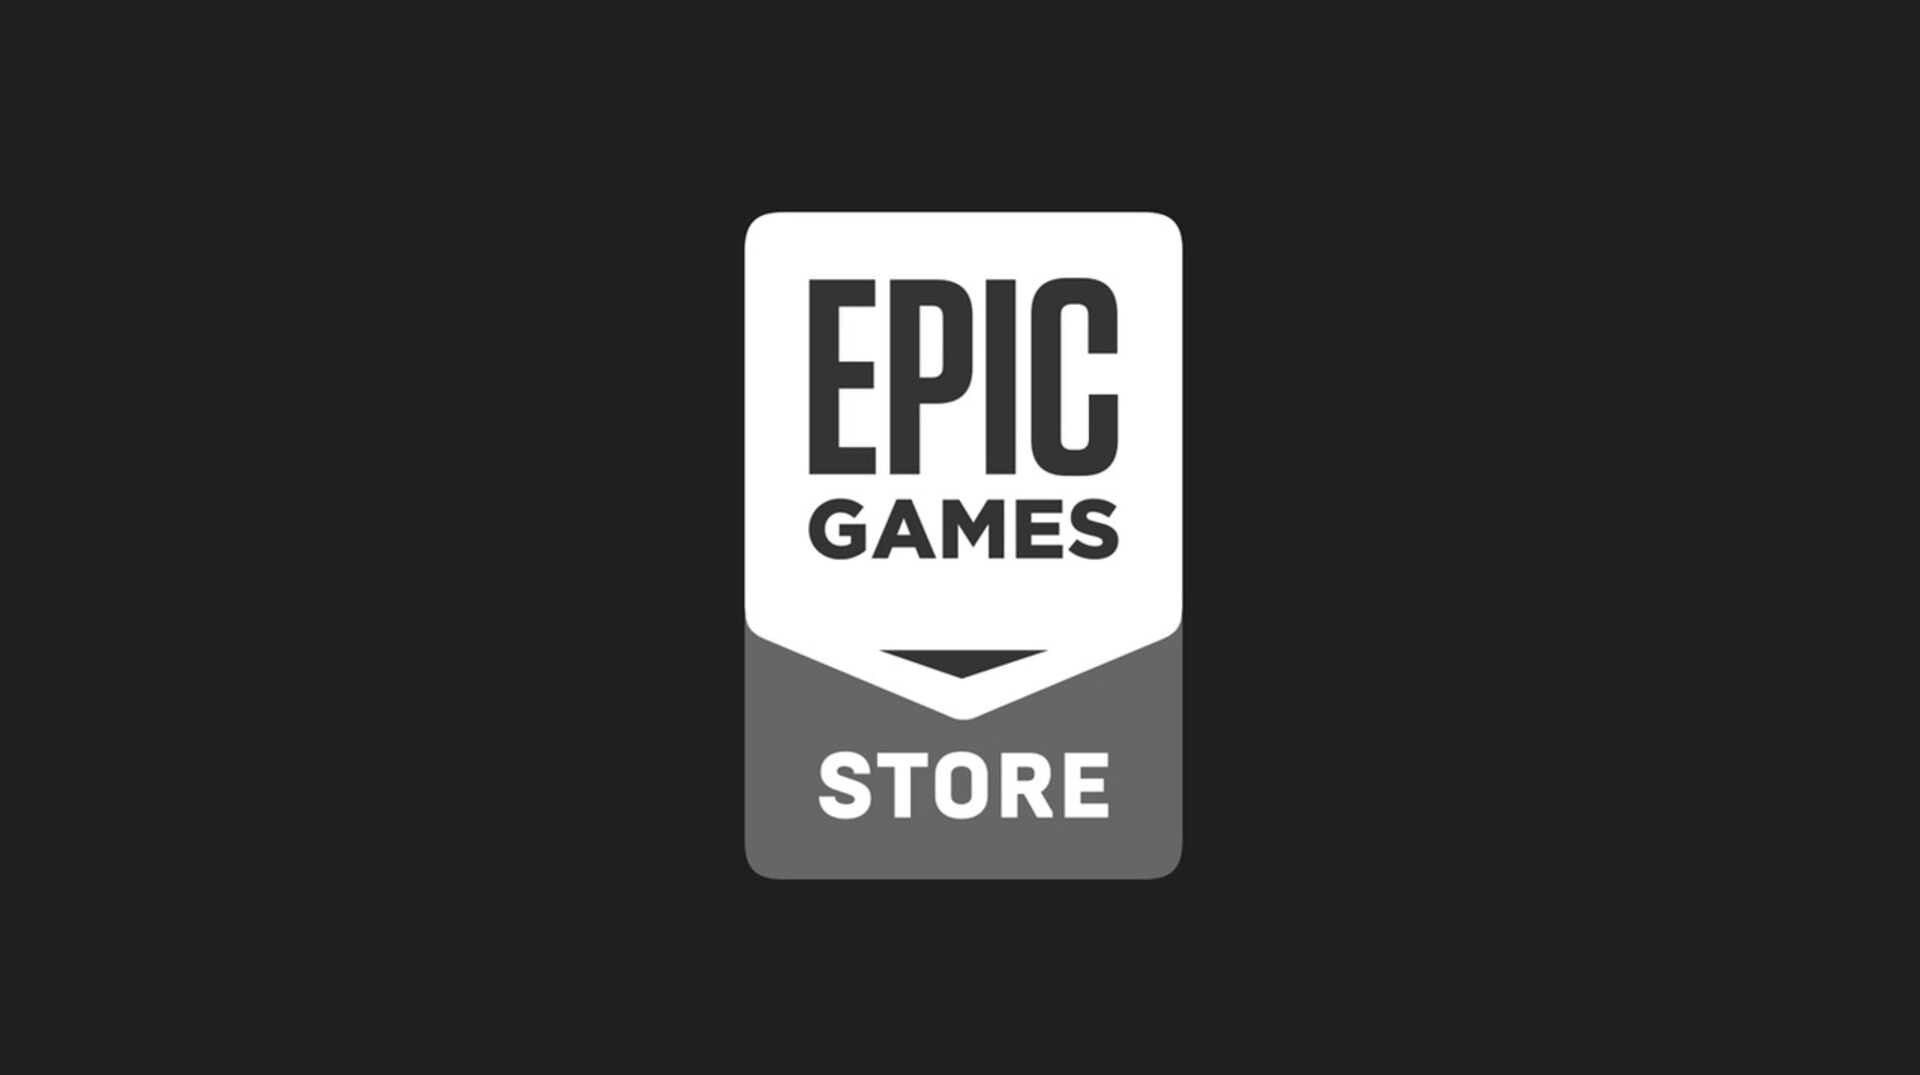 Fortnite maker Epic takes on Steam with its own PC games